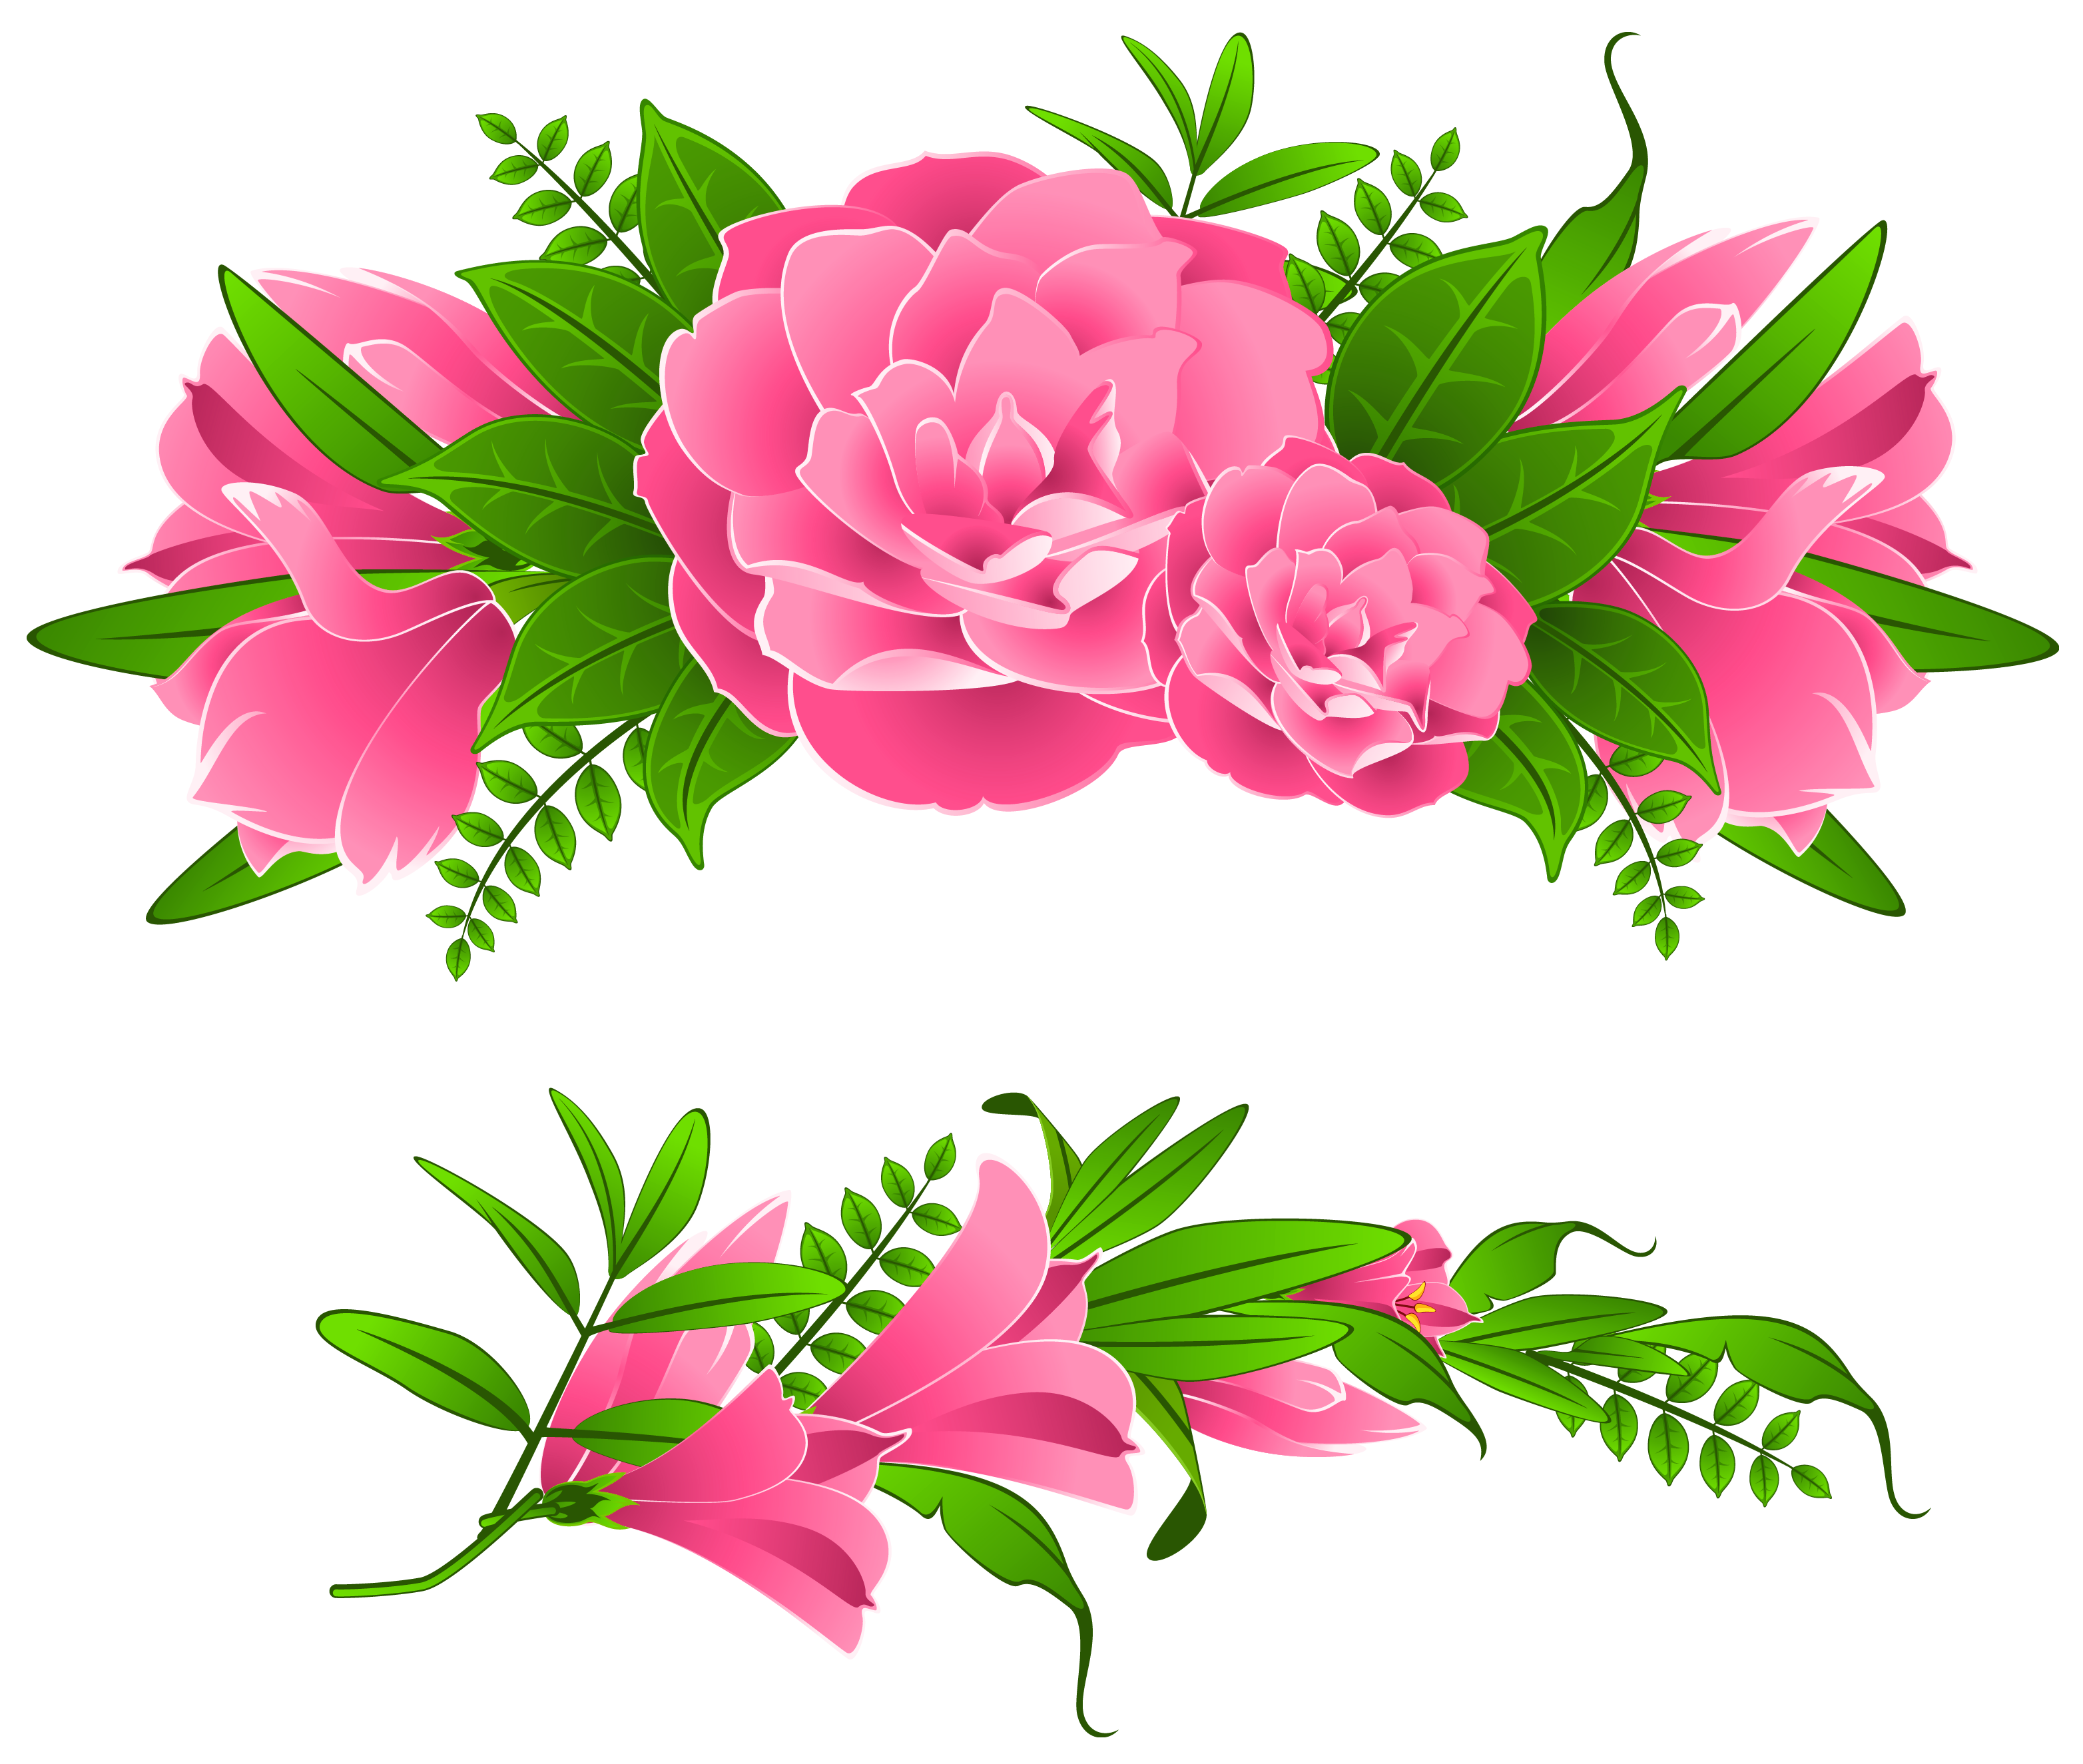 Pink flowers decorative element. Clipart roses borders